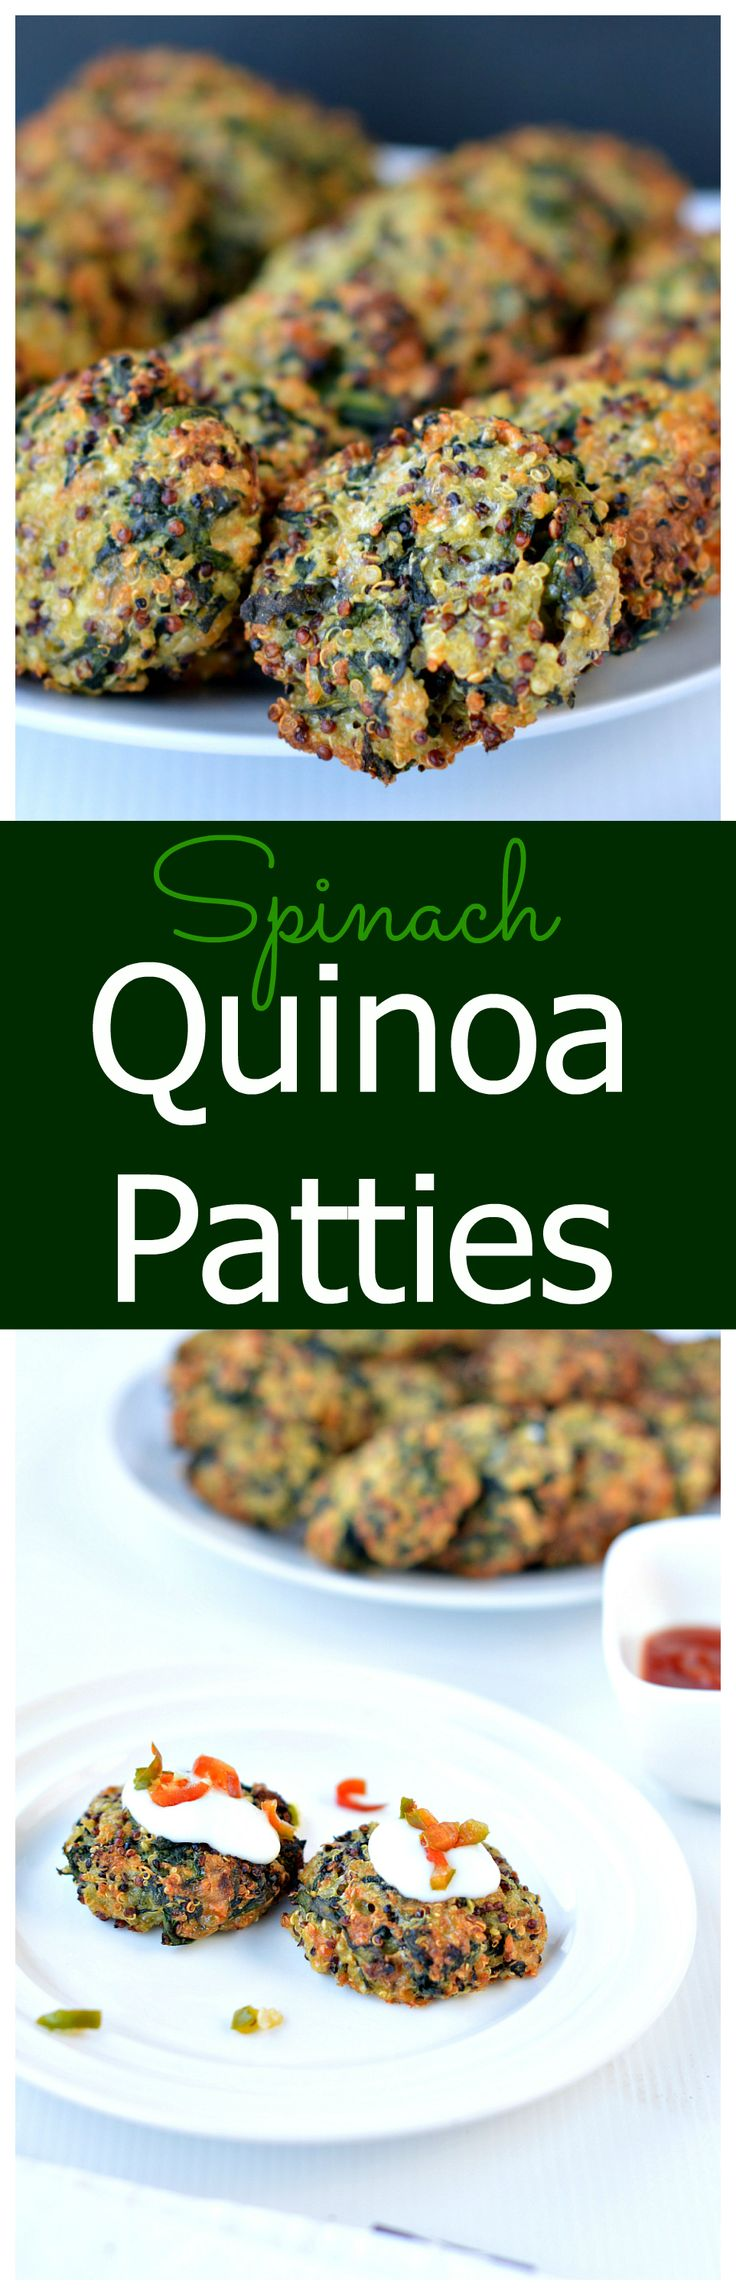 Baked Spinach & Quinoa Patties are crispy, made with only 5 ingredients and perfect to add into kids lunchboxes or use into vegetarian burgers. Add to salads as well